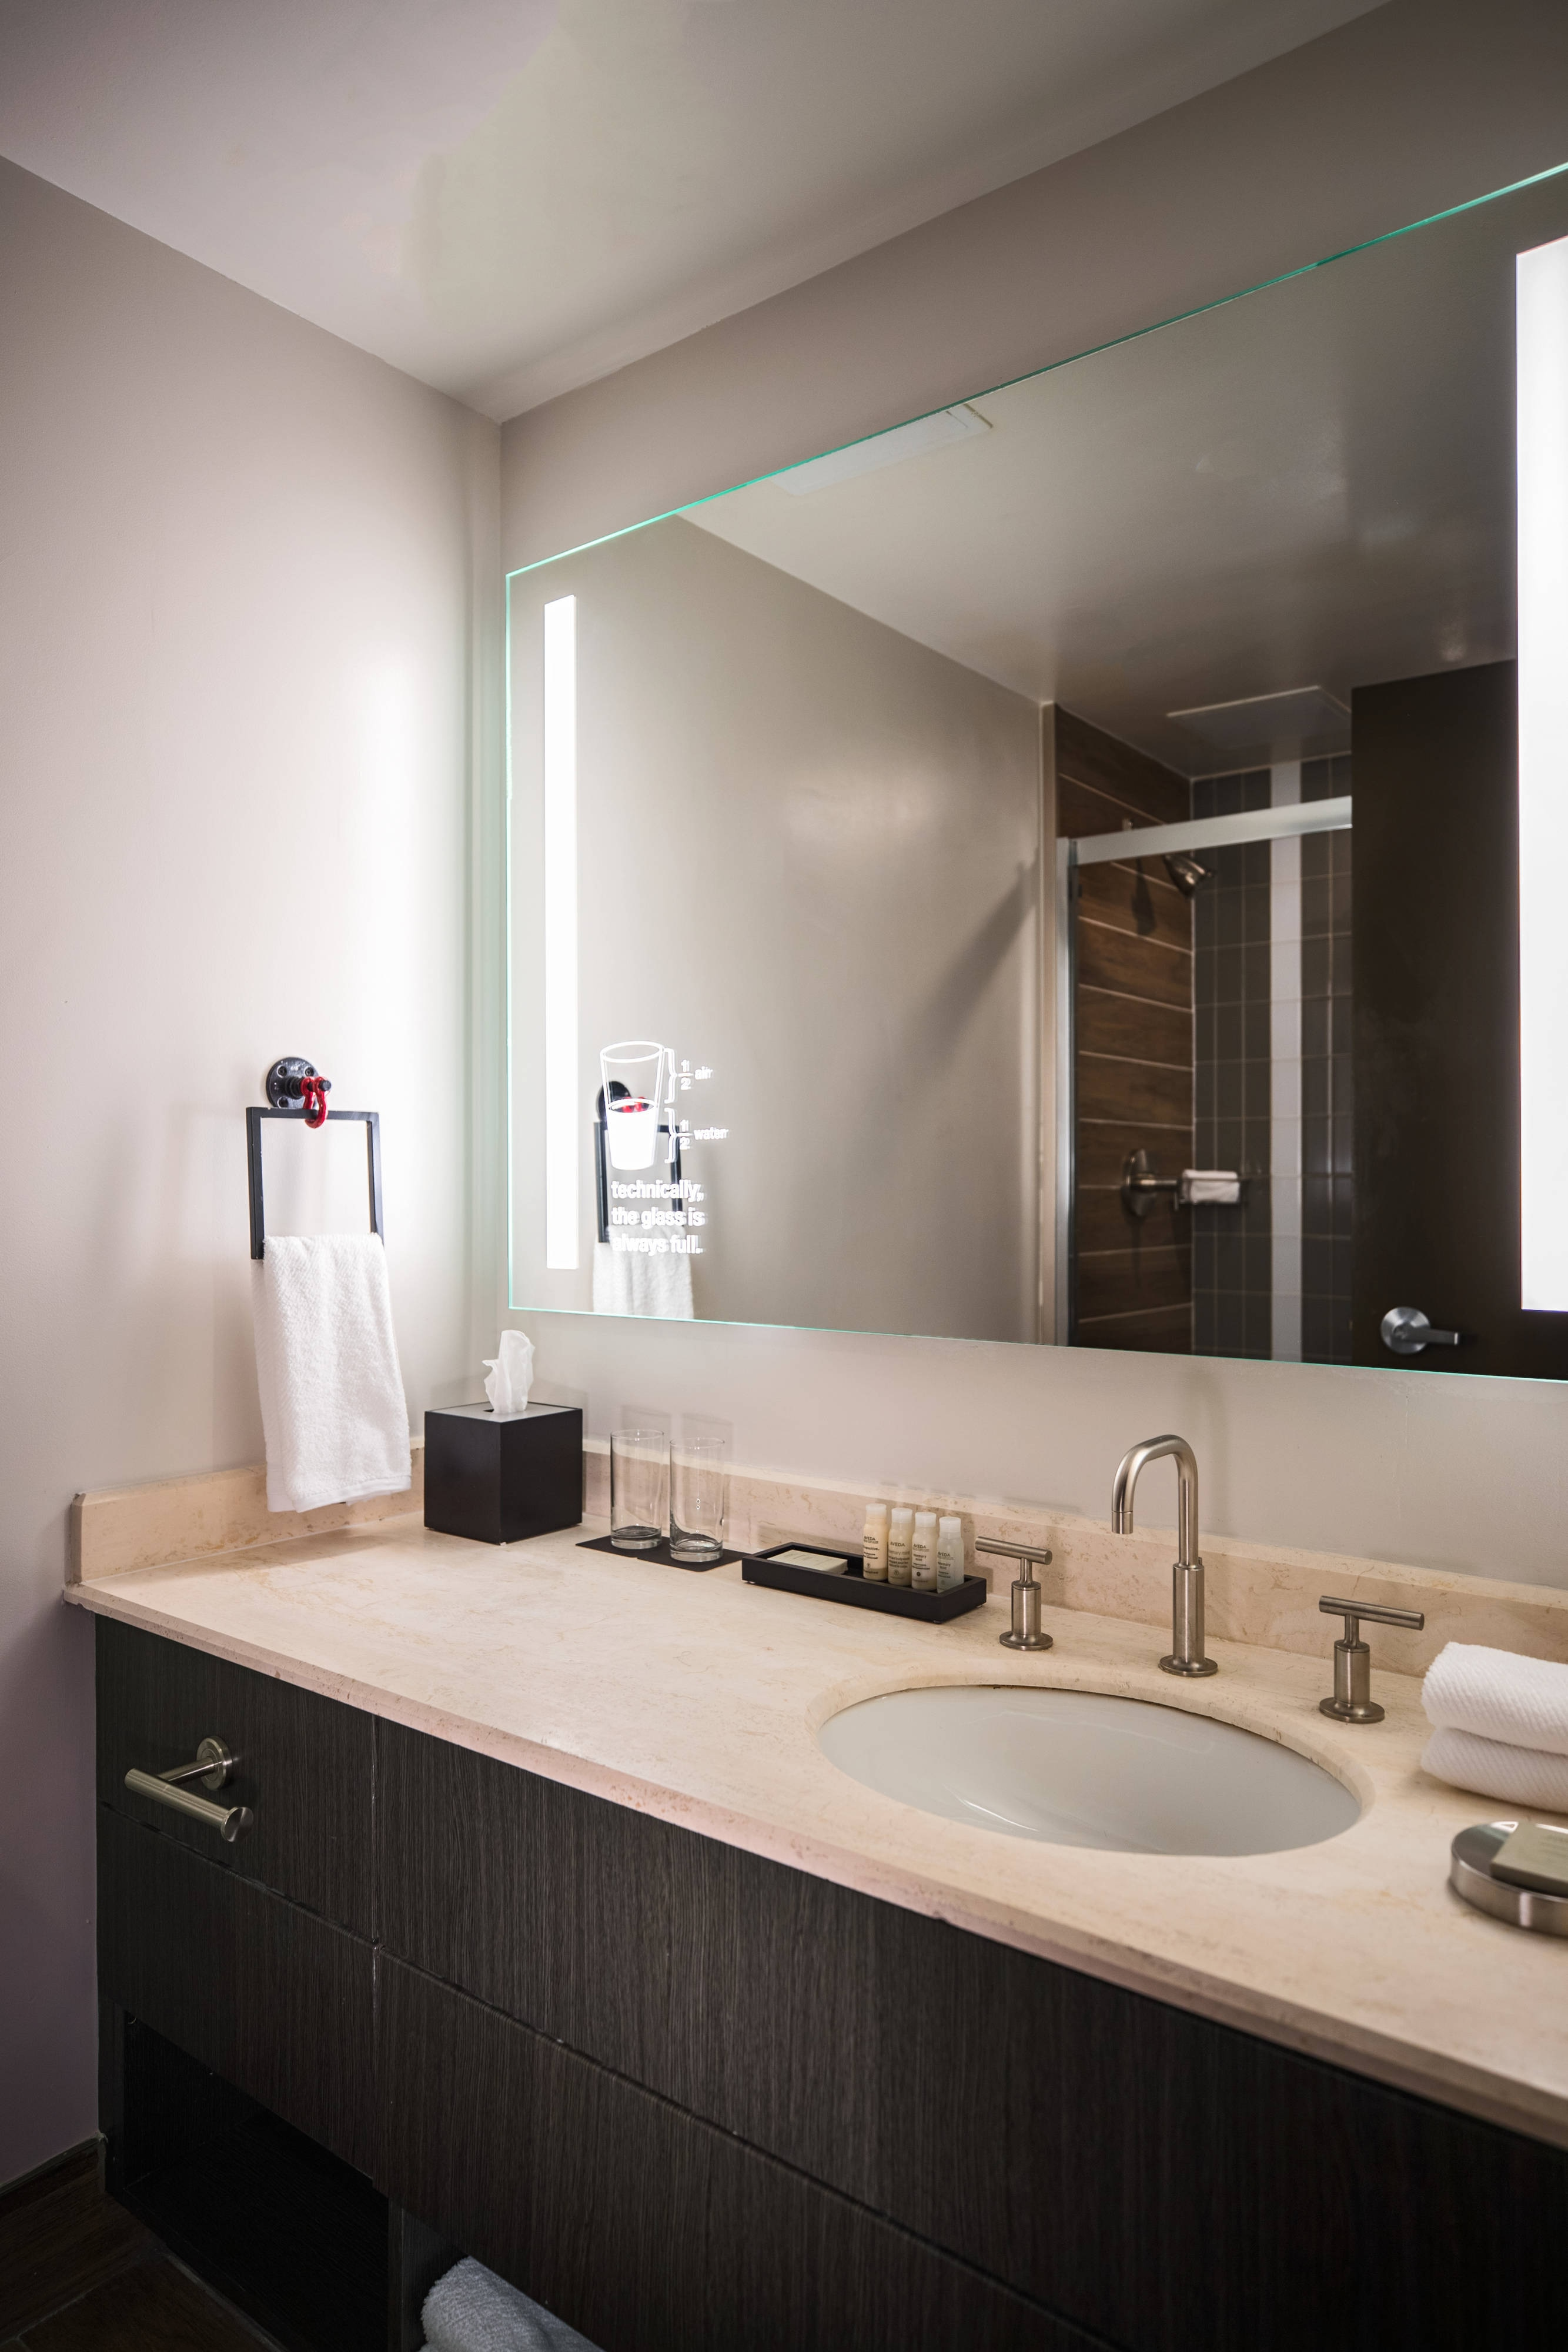 Hotel Guest Room: Downtown Hotels In Toledo, Ohio